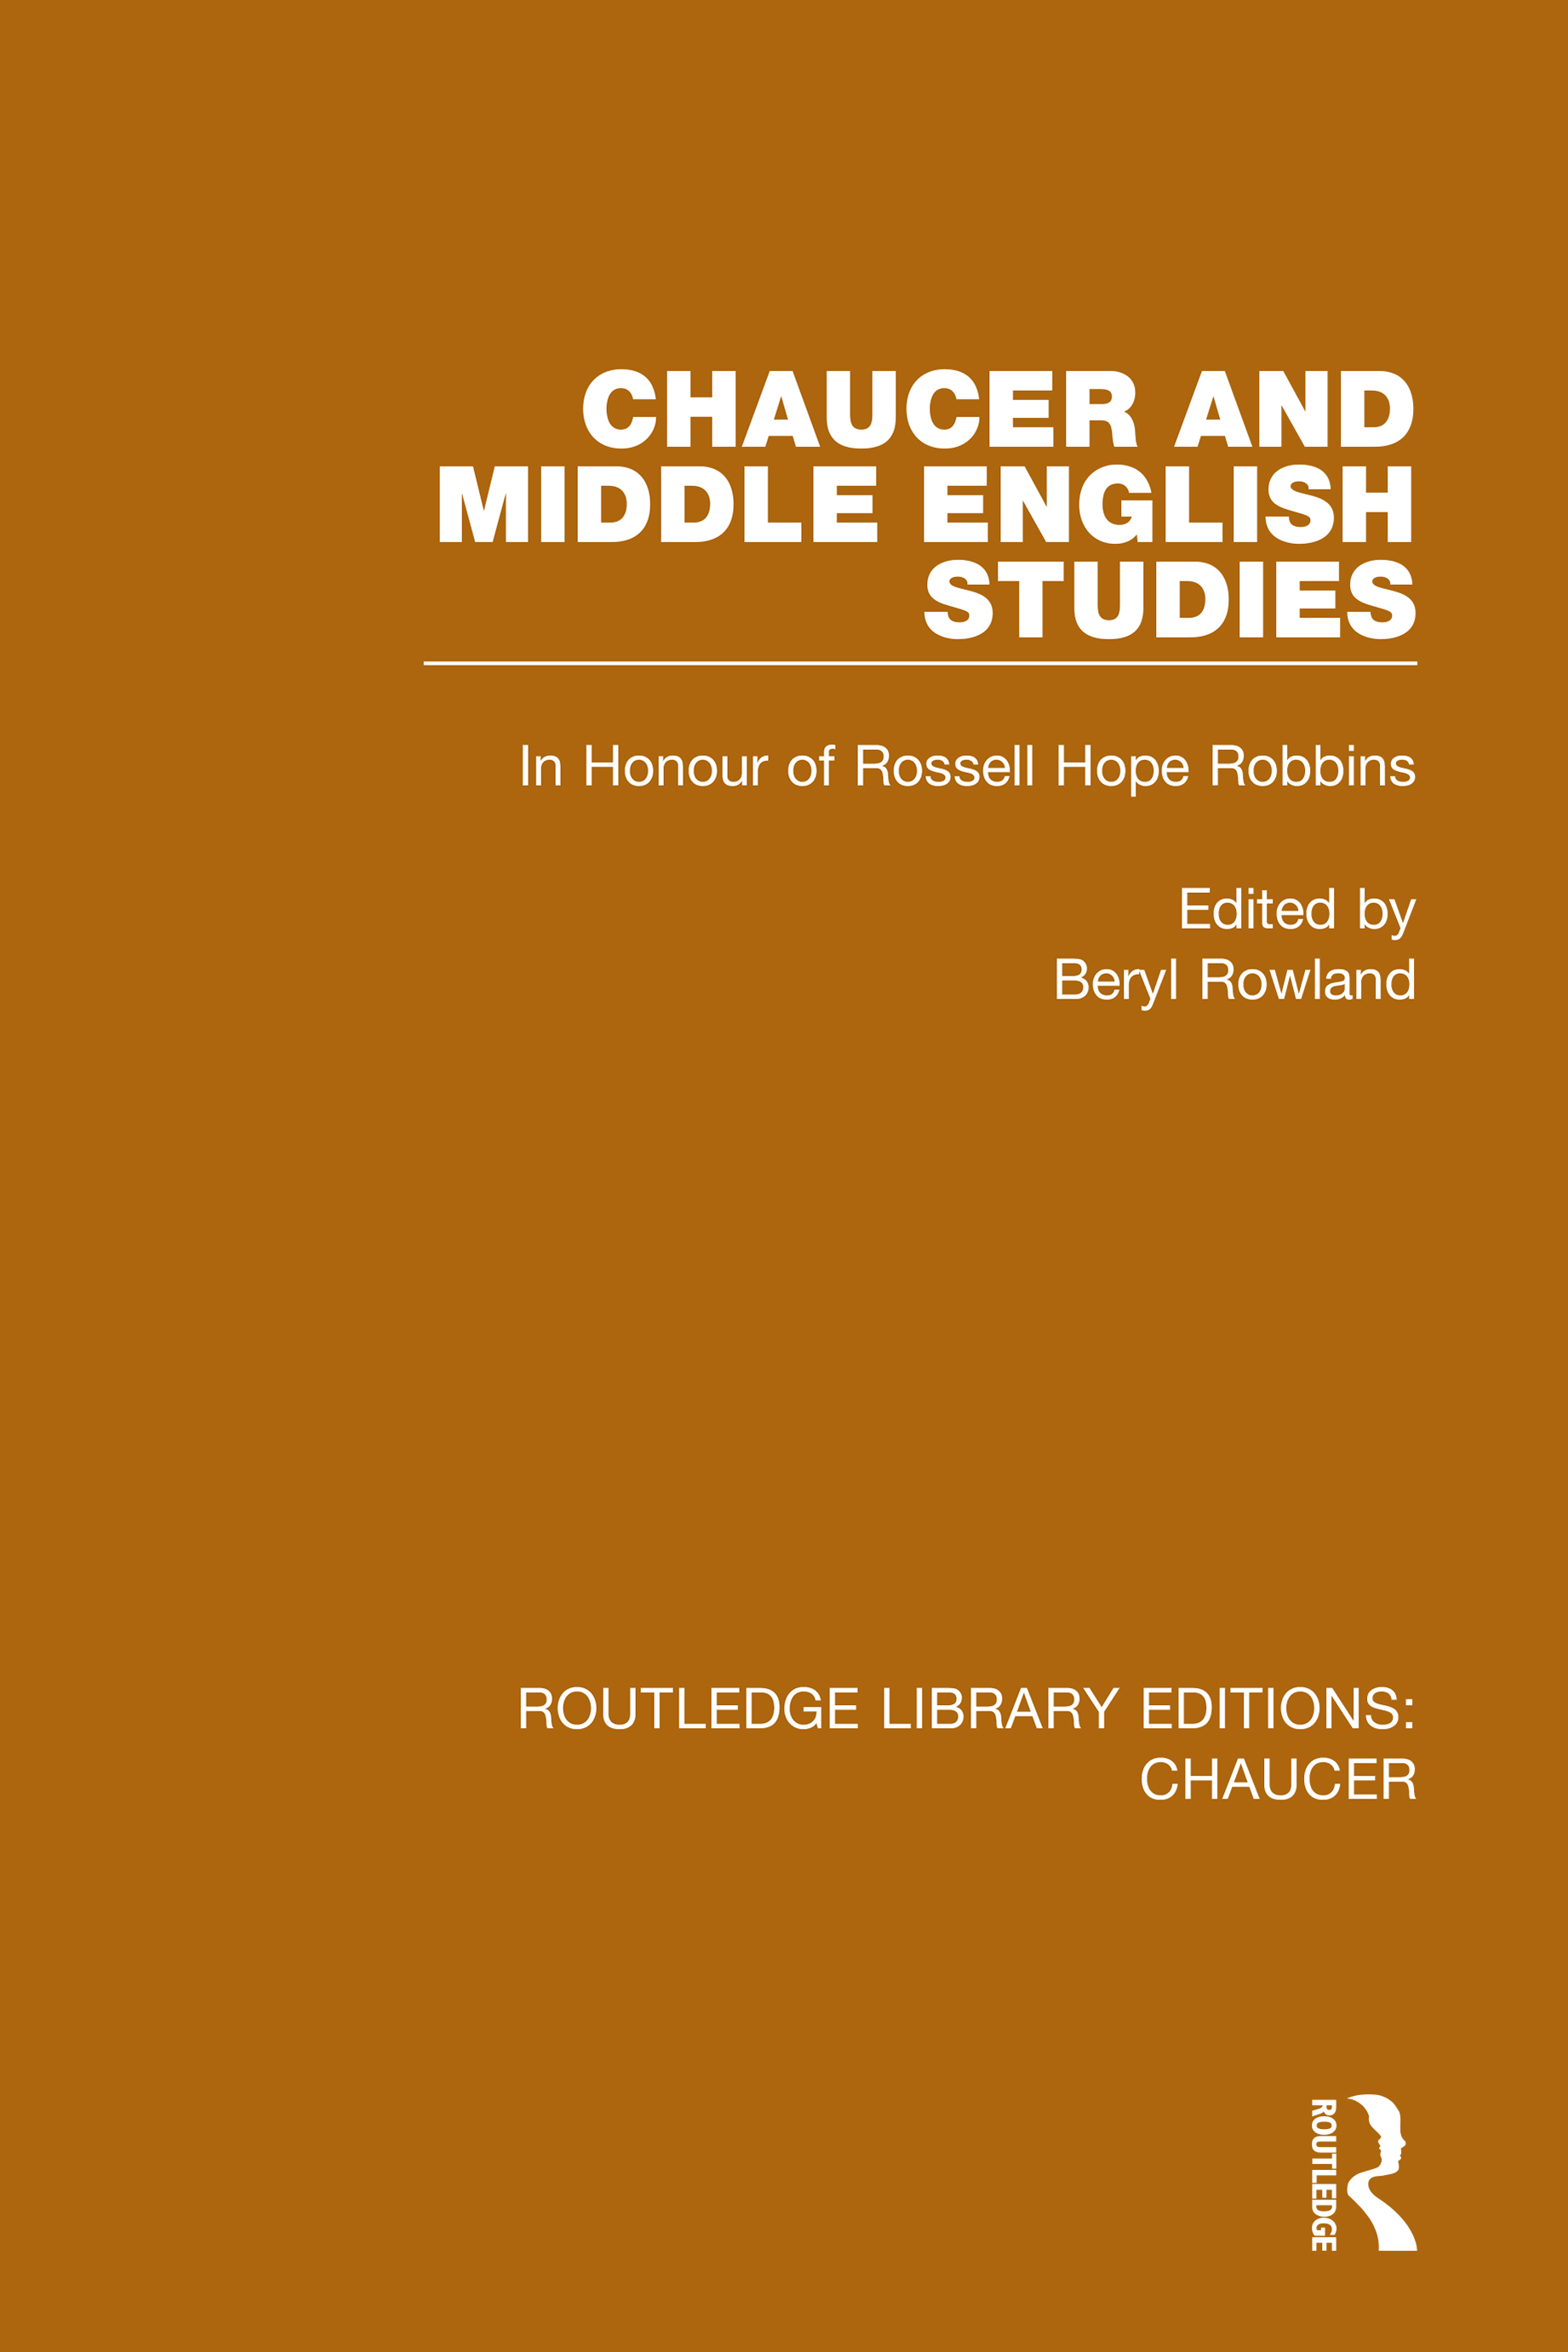 Chaucer and Middle English Studies: In Honour of Rossell Hope Robbins book cover